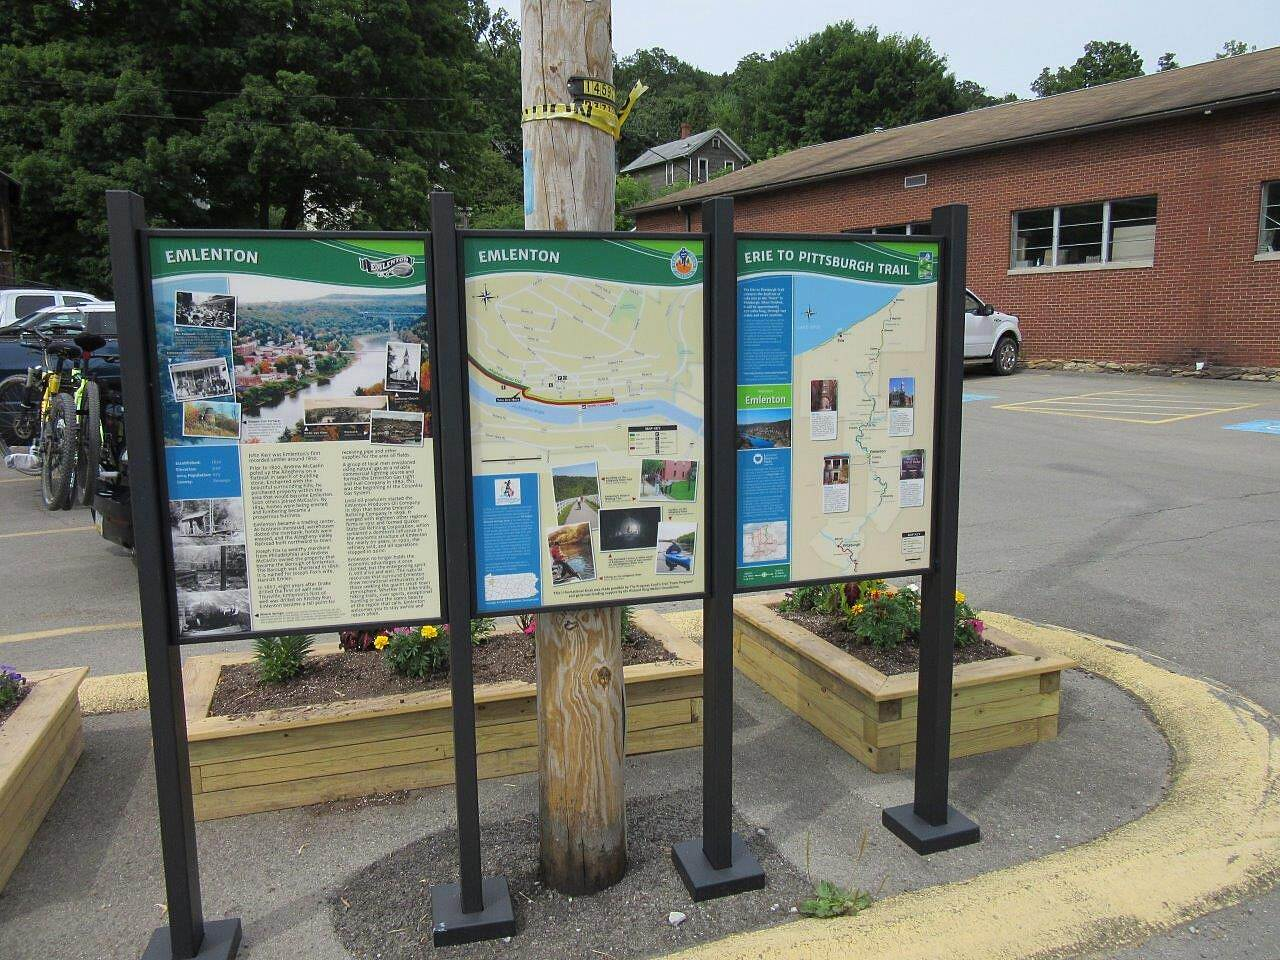 Allegheny River Trail New sign (s) in Emlenton New since the last time we were in Emlenton, Emlenton Erie to Pittsburgh trail.  With information about the area.  Located at the parking area just outside of the Emlenton Post Office.